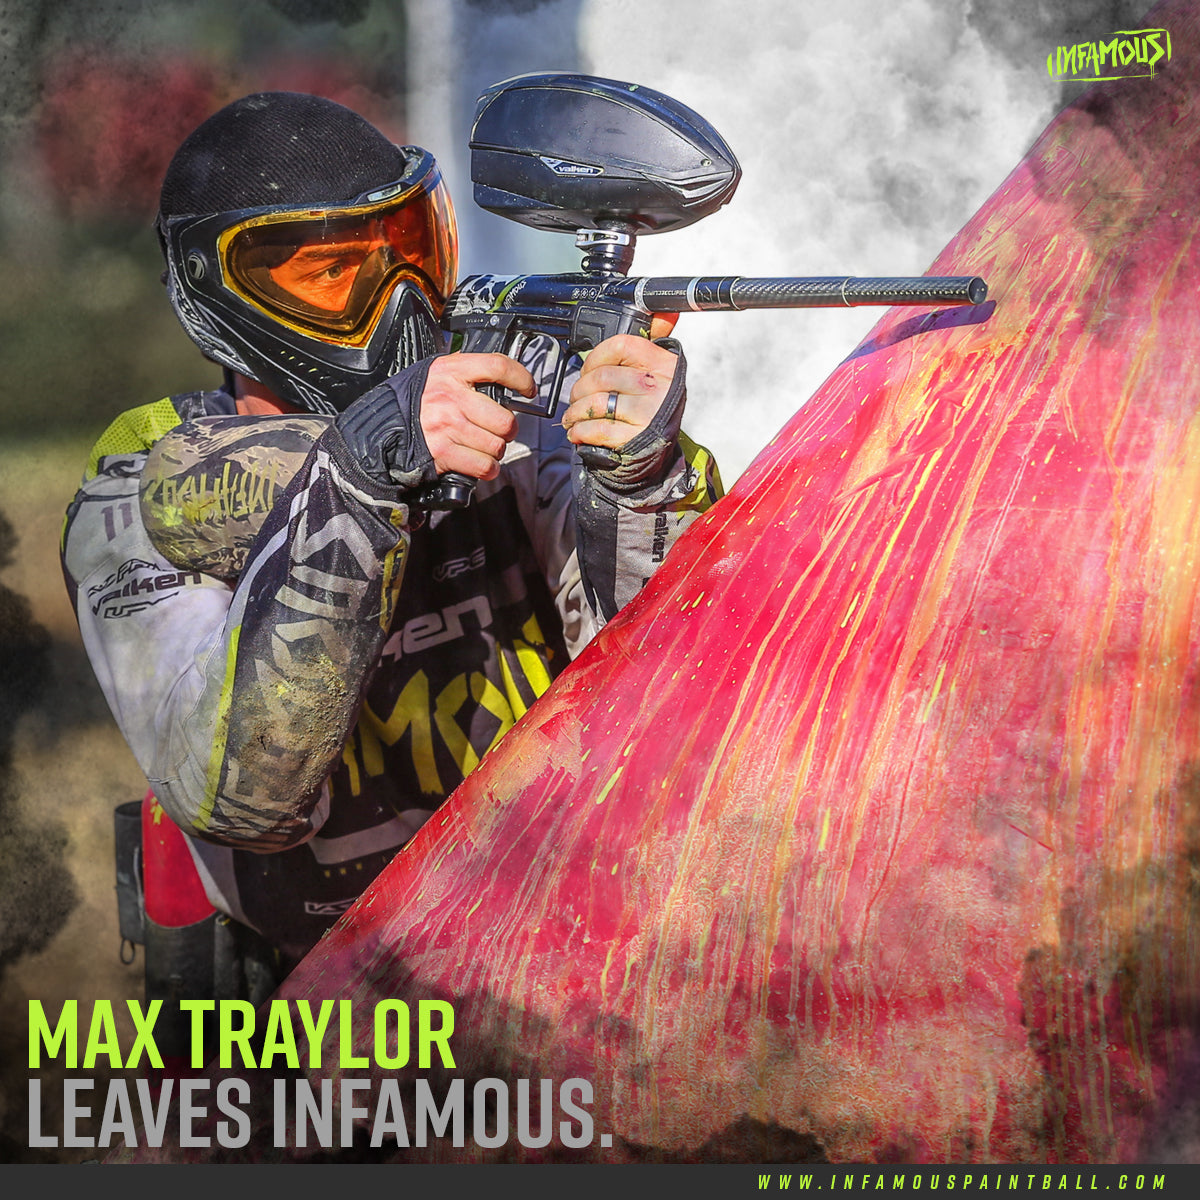 MAX TRAYLOR LEAVES INFAMOUS